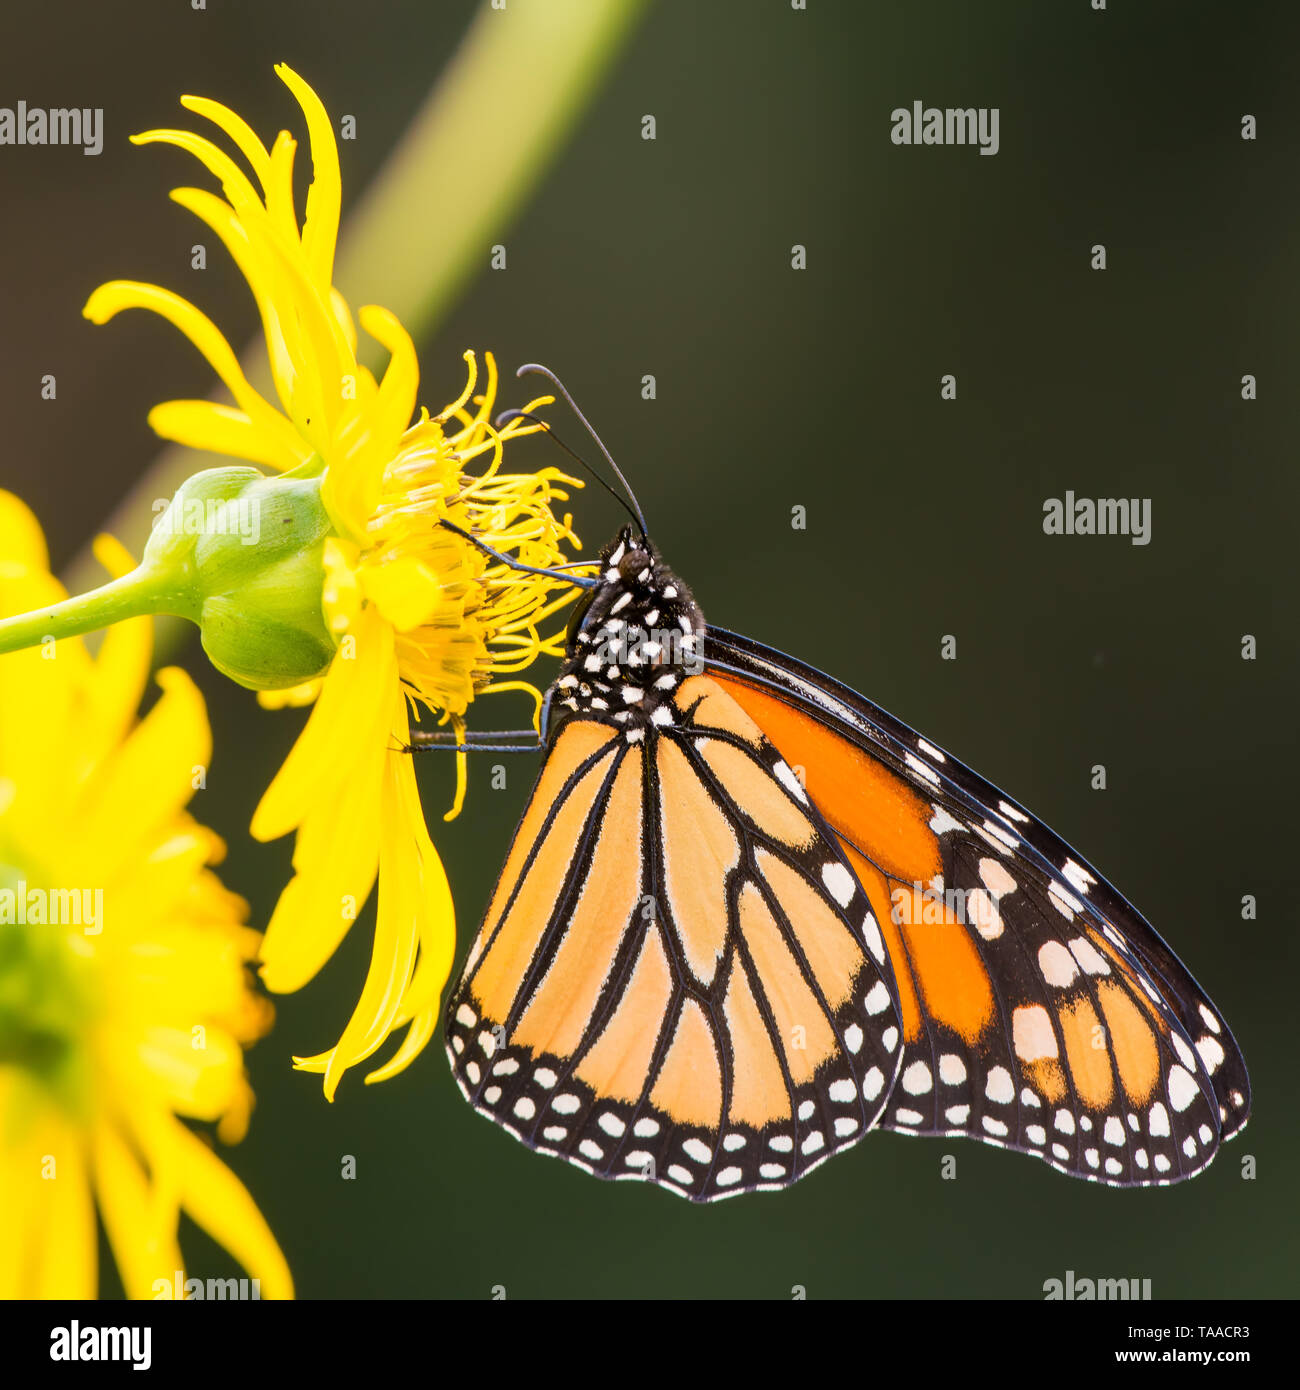 Mariposa Monarca en amarillo en el wildflower Theodore Wirth Park en Minneapolis, Minnesota Foto de stock